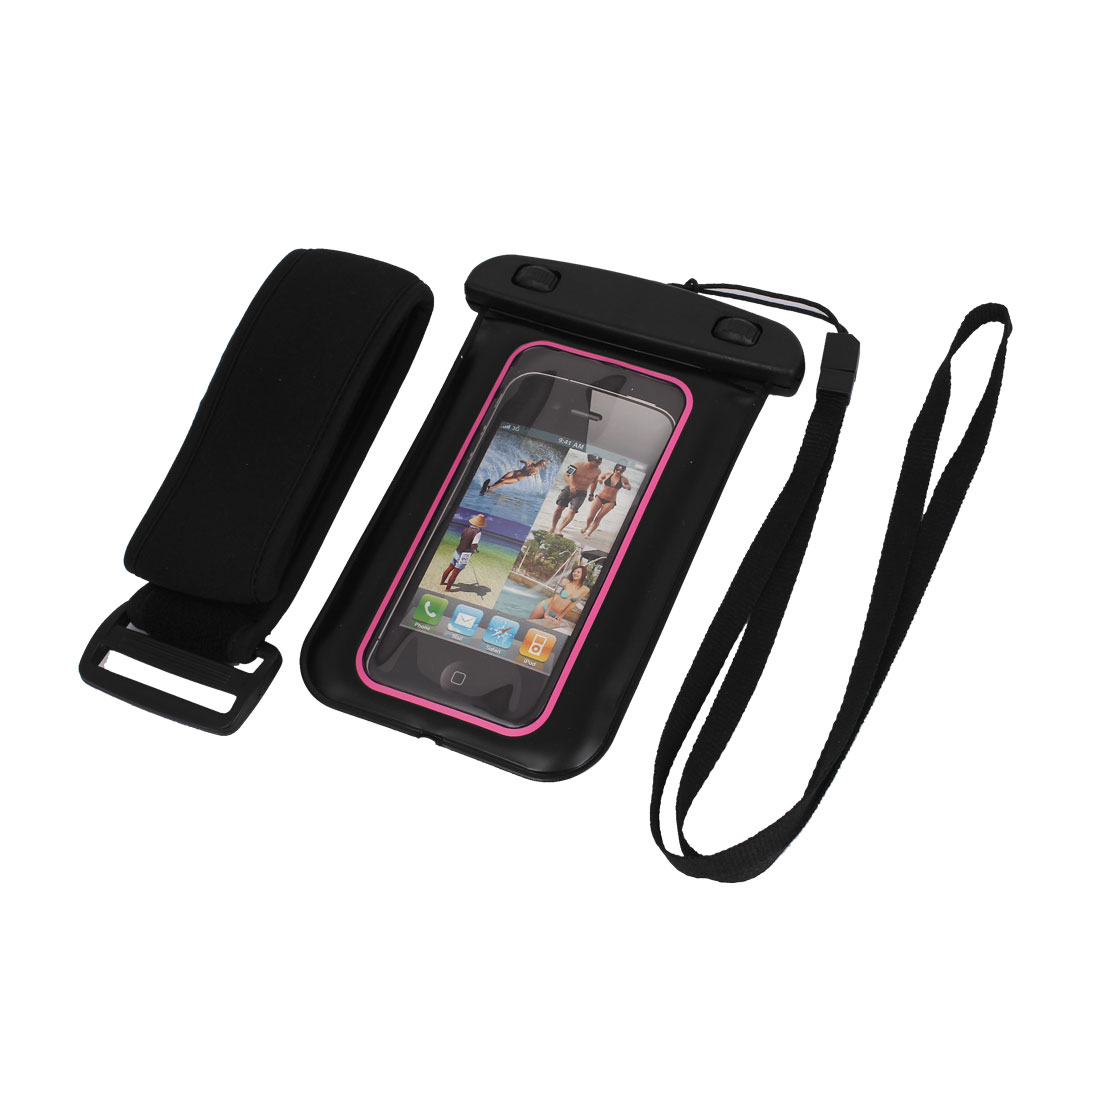 sports shoes b35ba a15bb Unique Bargains Waterproof Case Dry Bag Skin Cover Pouch Sleeve Black Pink  for iPhone 5 5C 5S